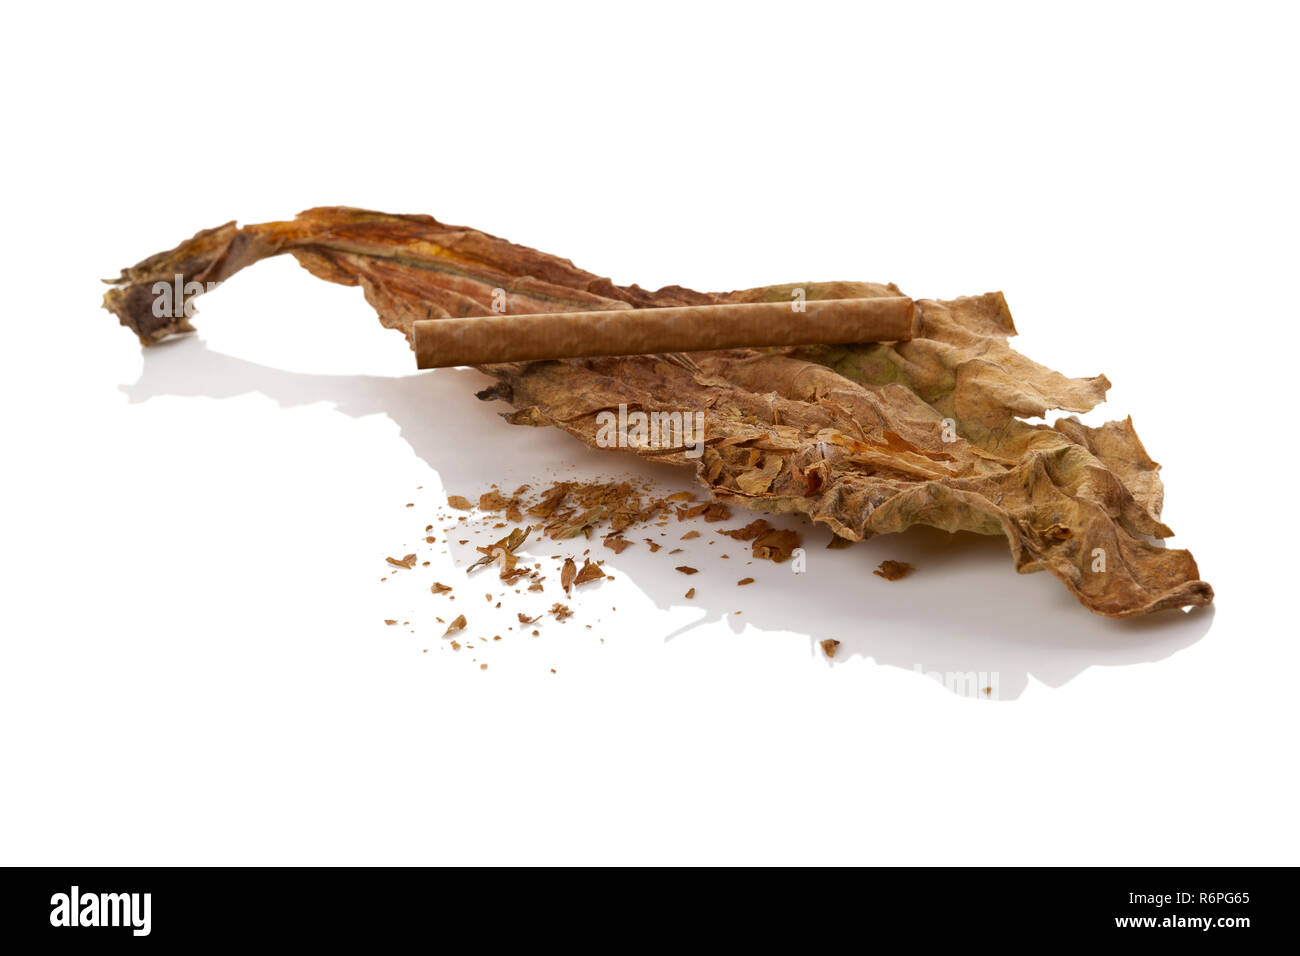 Dried leaf of tobacco with cigarette. - Stock Image